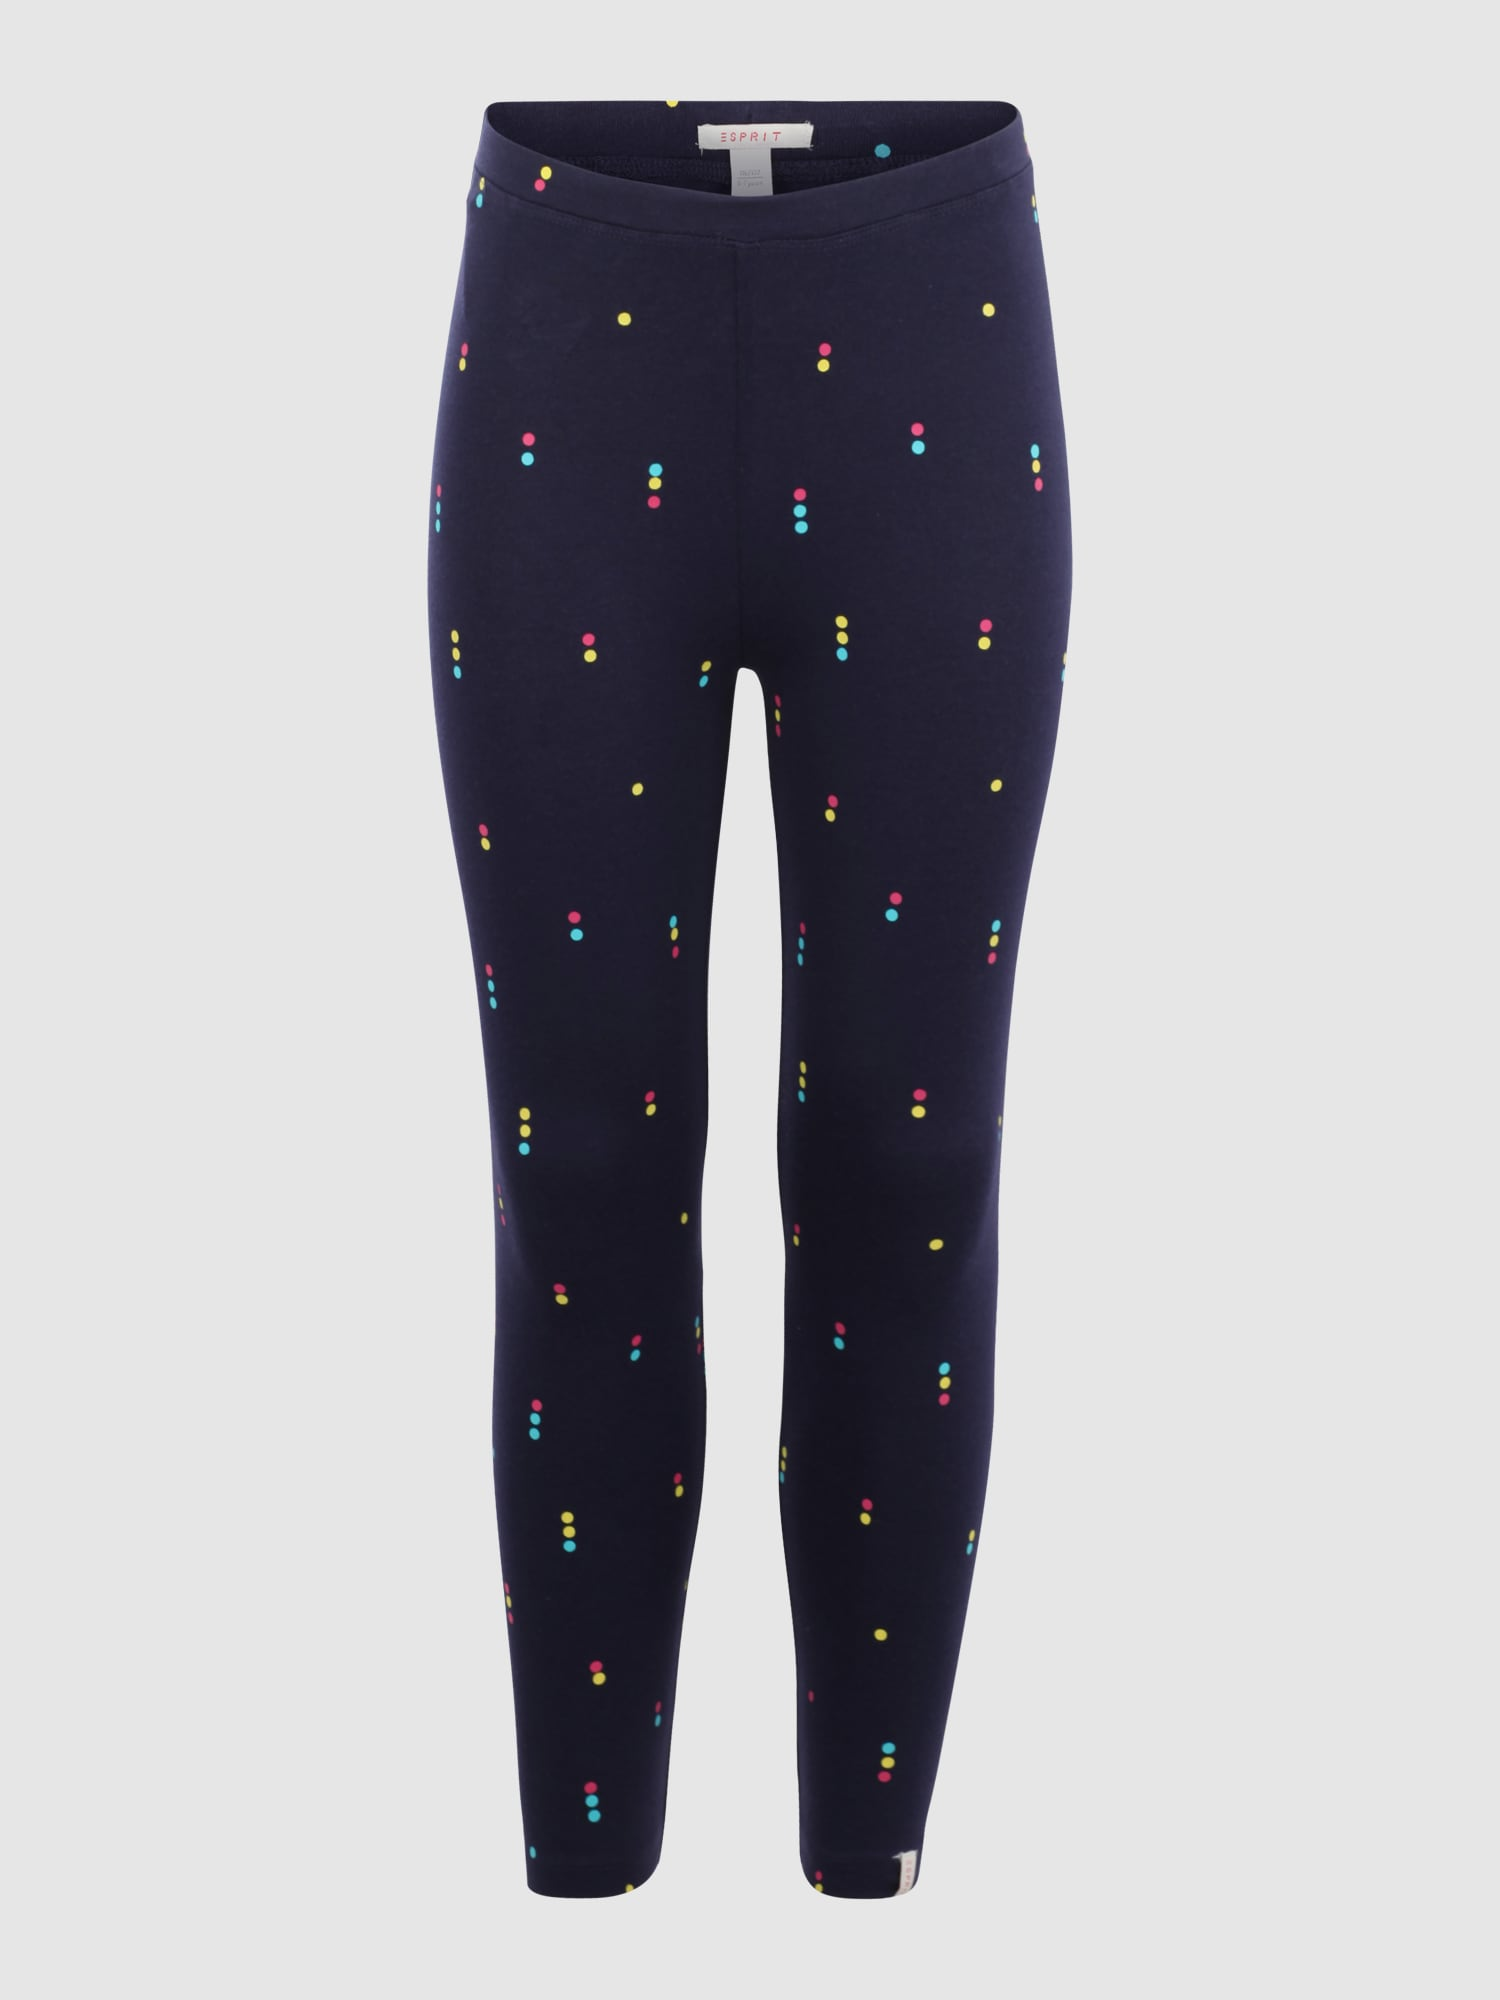 esprit leggings mit punkte muster in blau about you. Black Bedroom Furniture Sets. Home Design Ideas